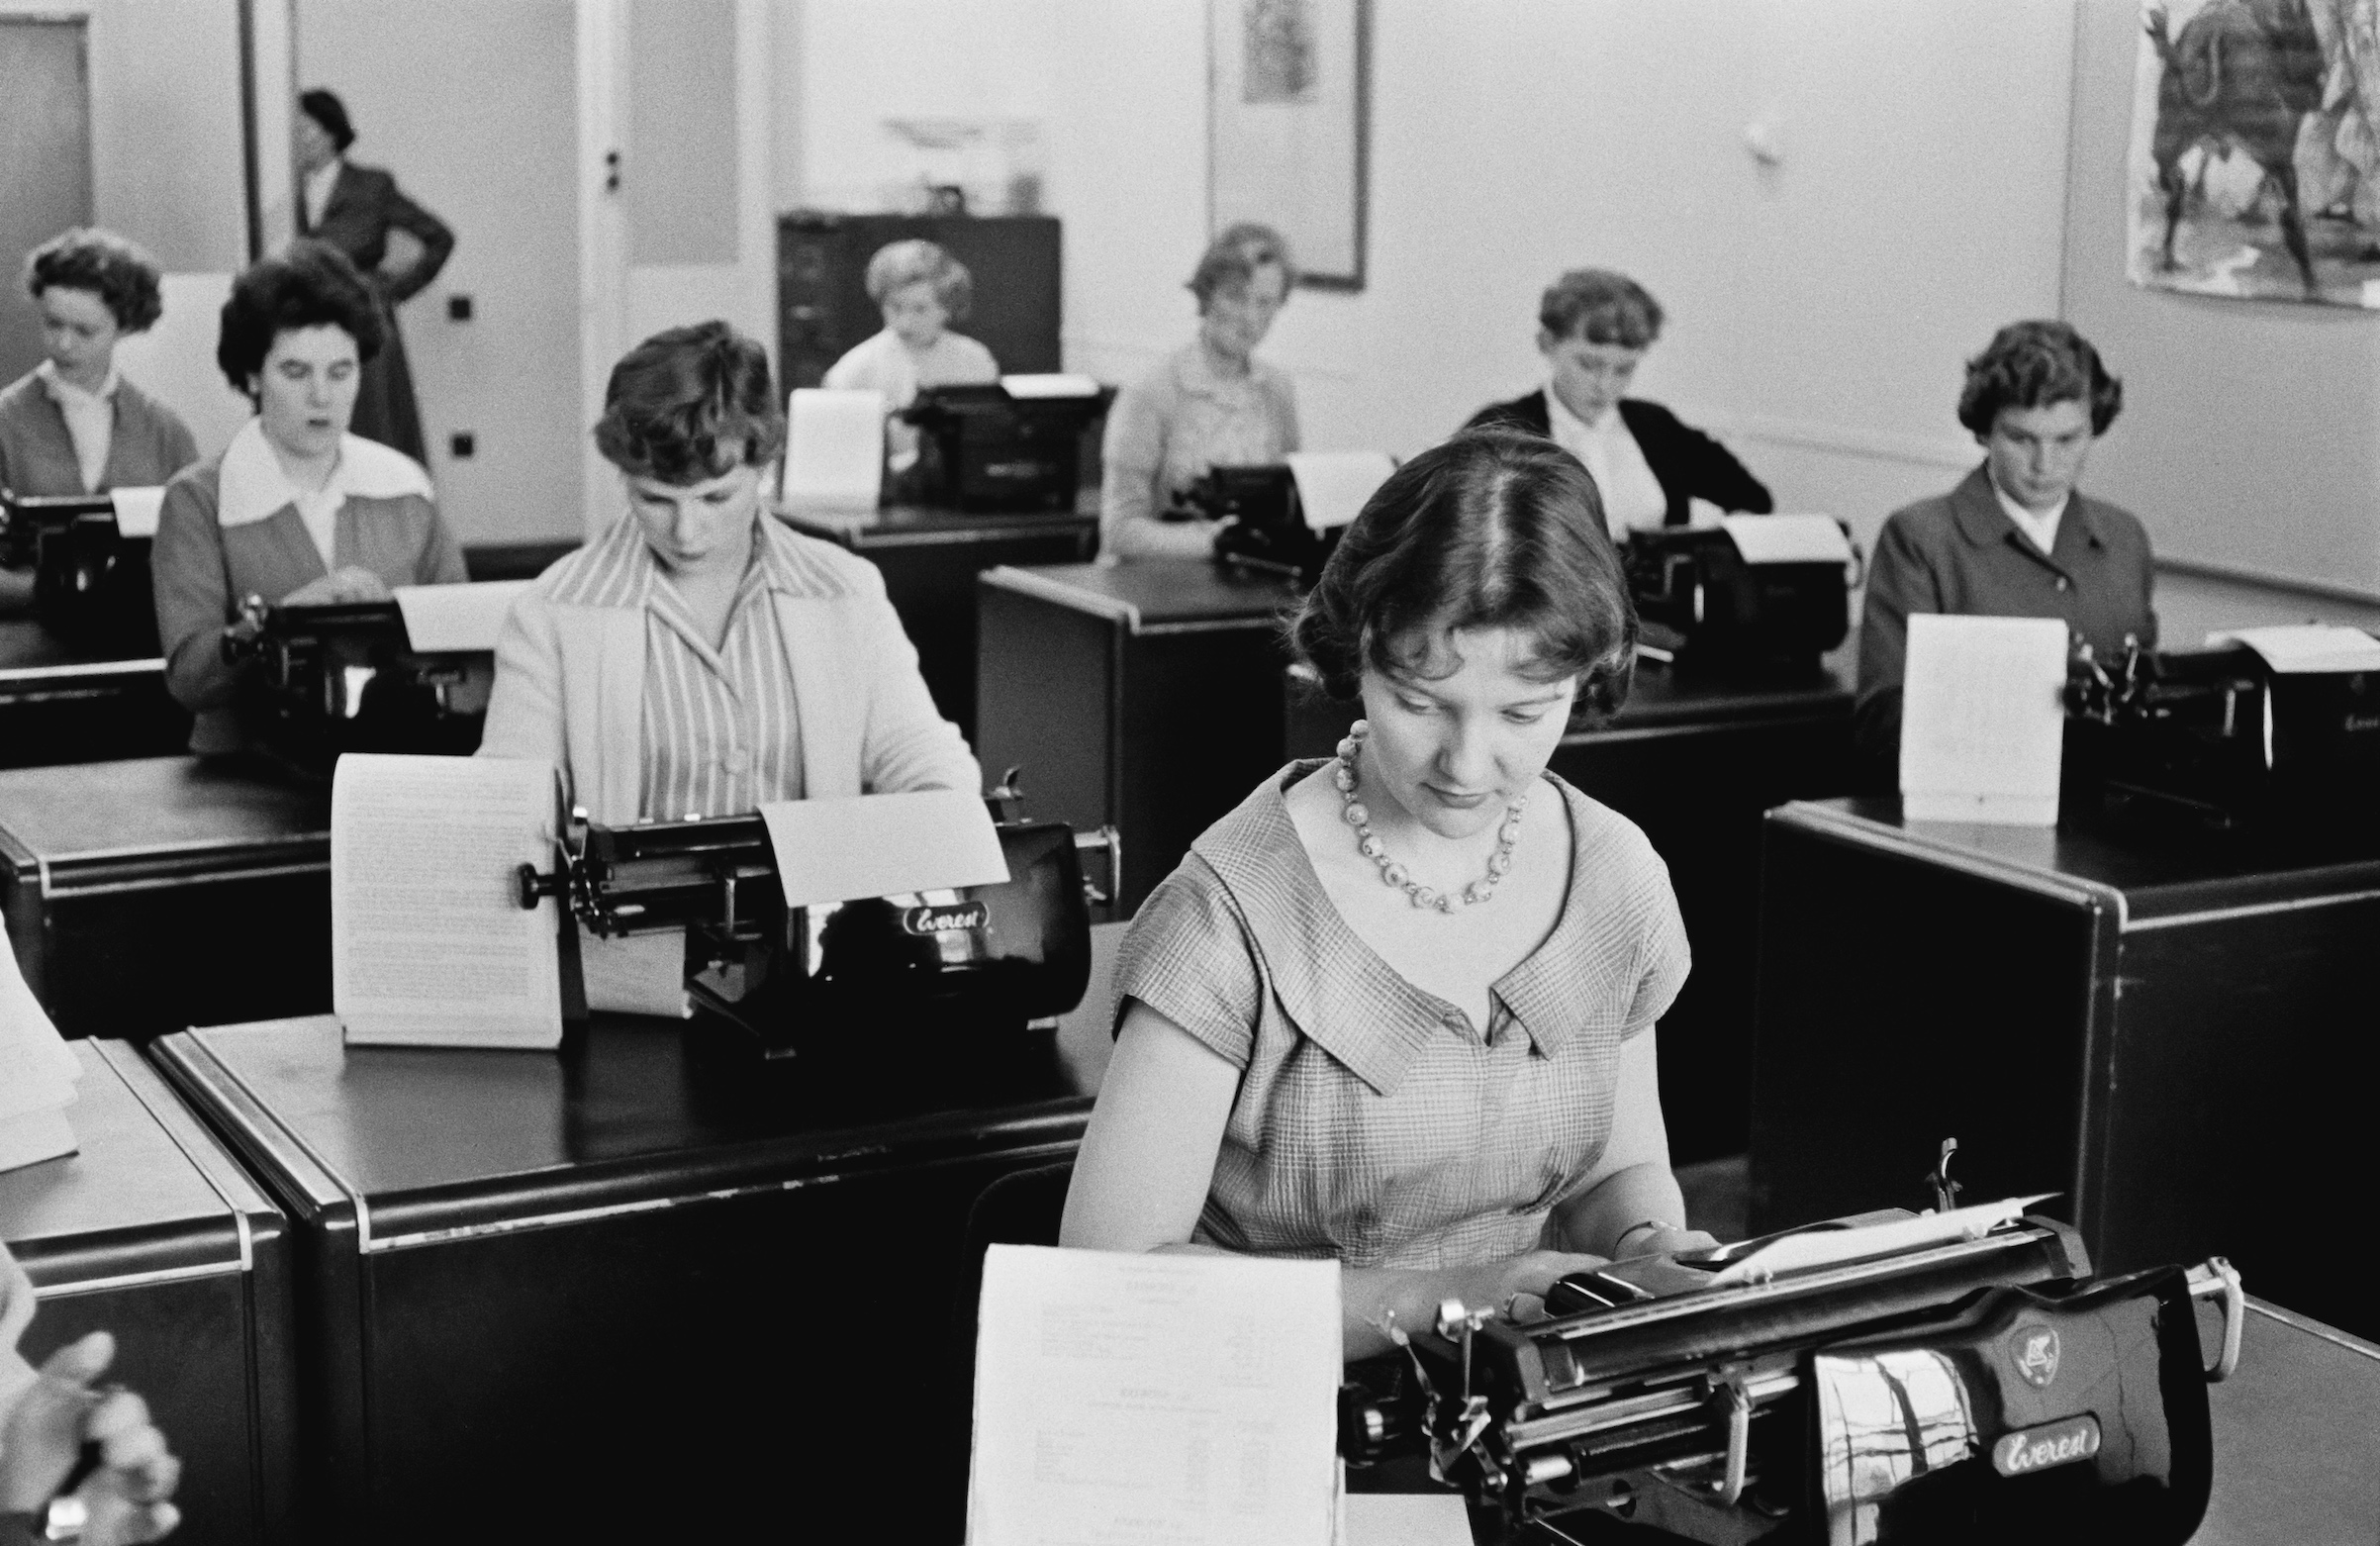 Typists at work at Unilever House in Blackfriars, London, September 1955.